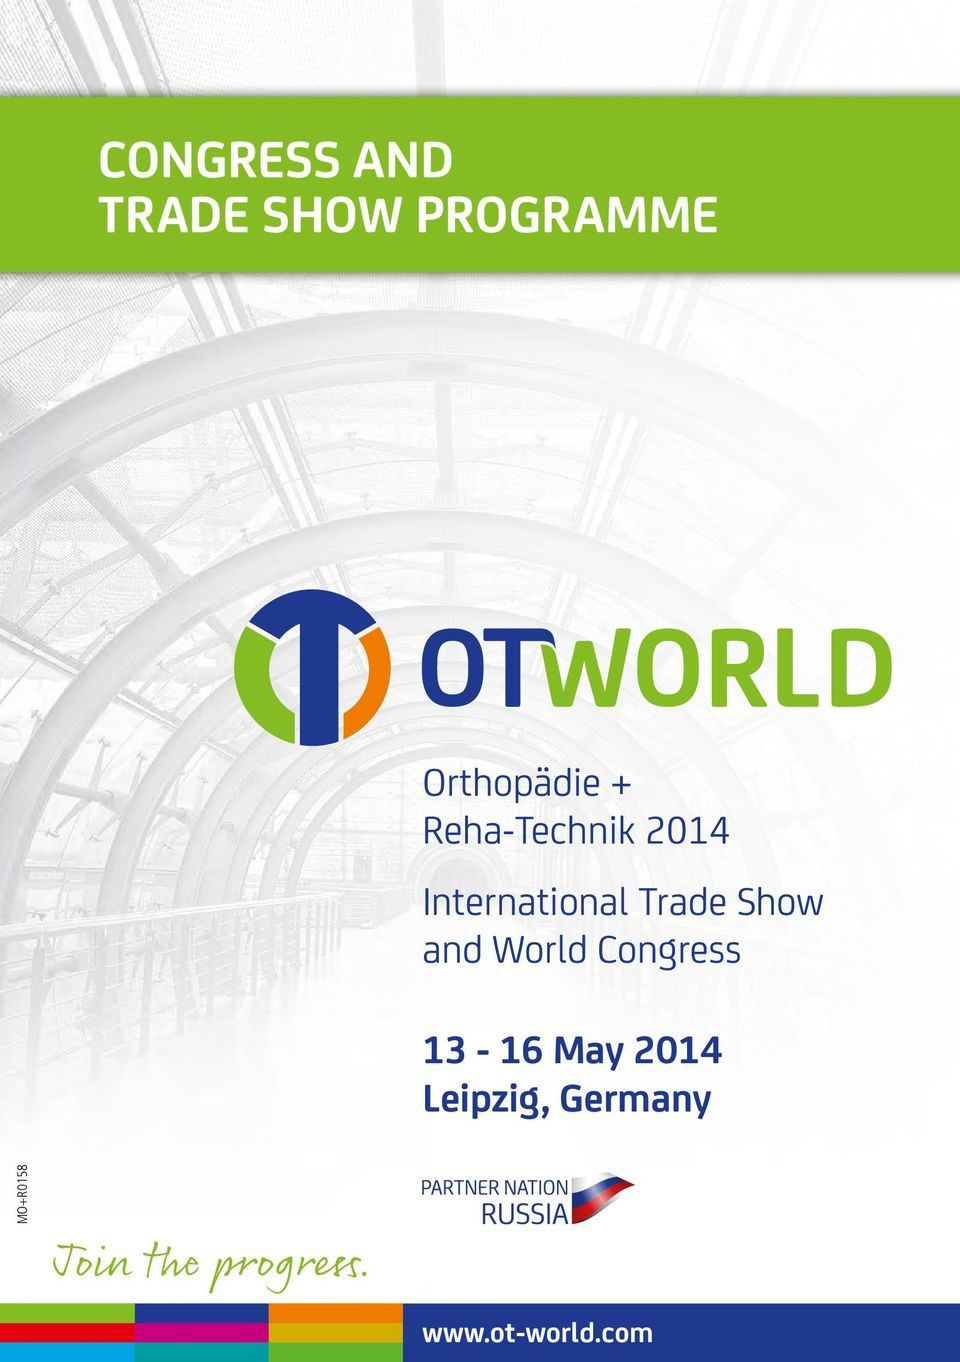 Trade Show and World Congress 13-16